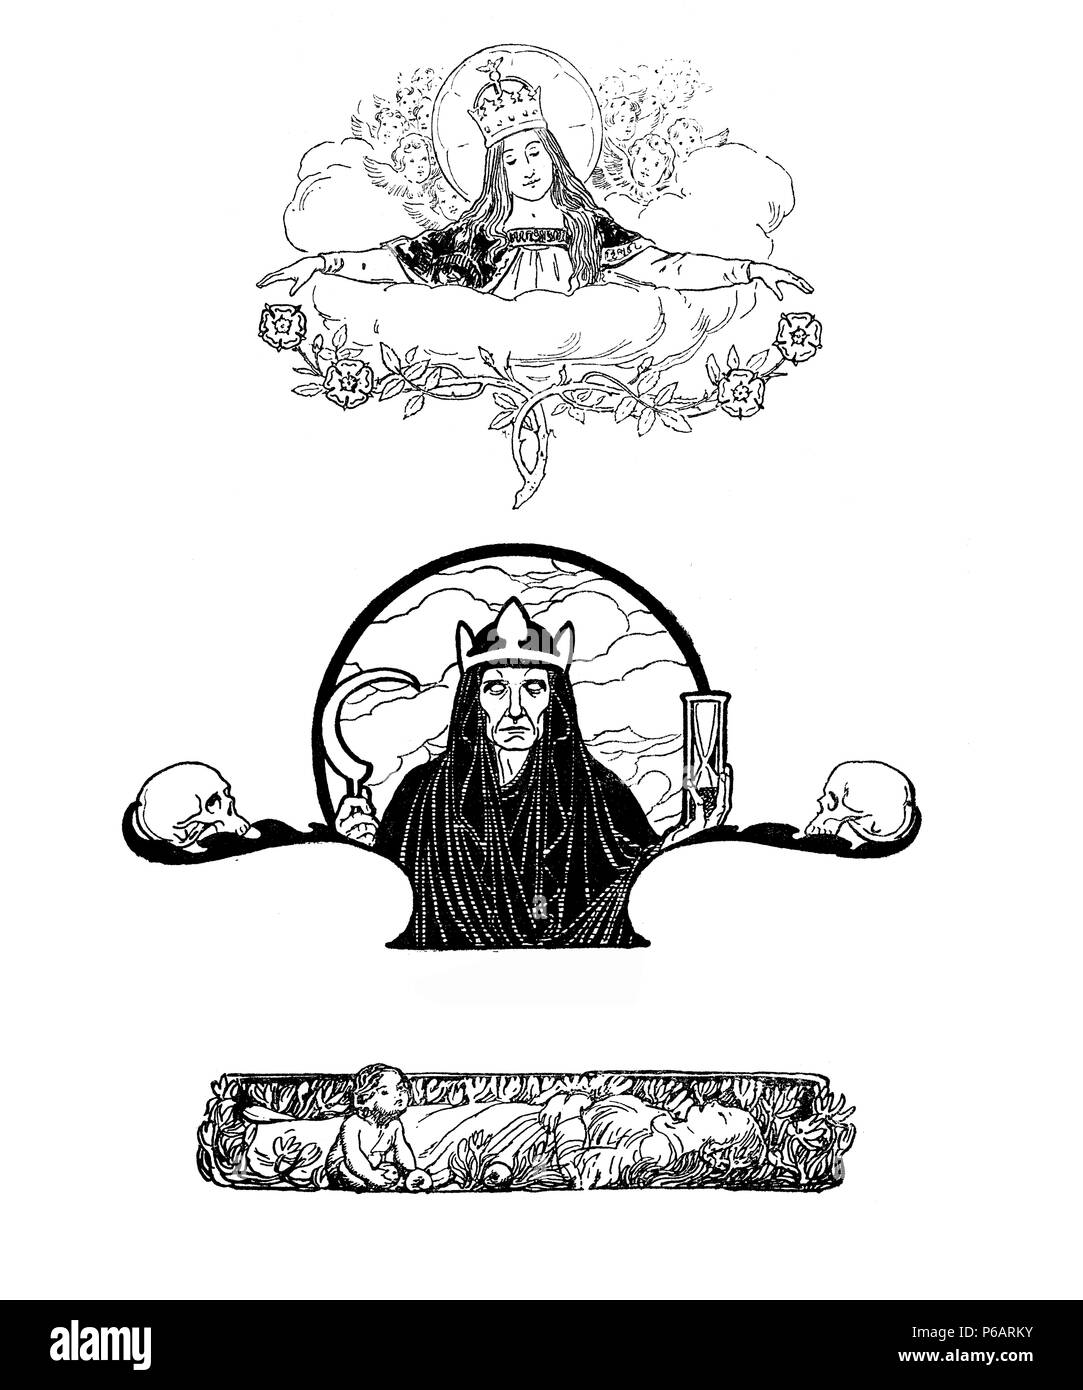 Typographic decorative art deco elements early '900:fantastic figures, women,saint, queen,death symbols,time and floral as banner, border and end chapter decoration Stock Photo